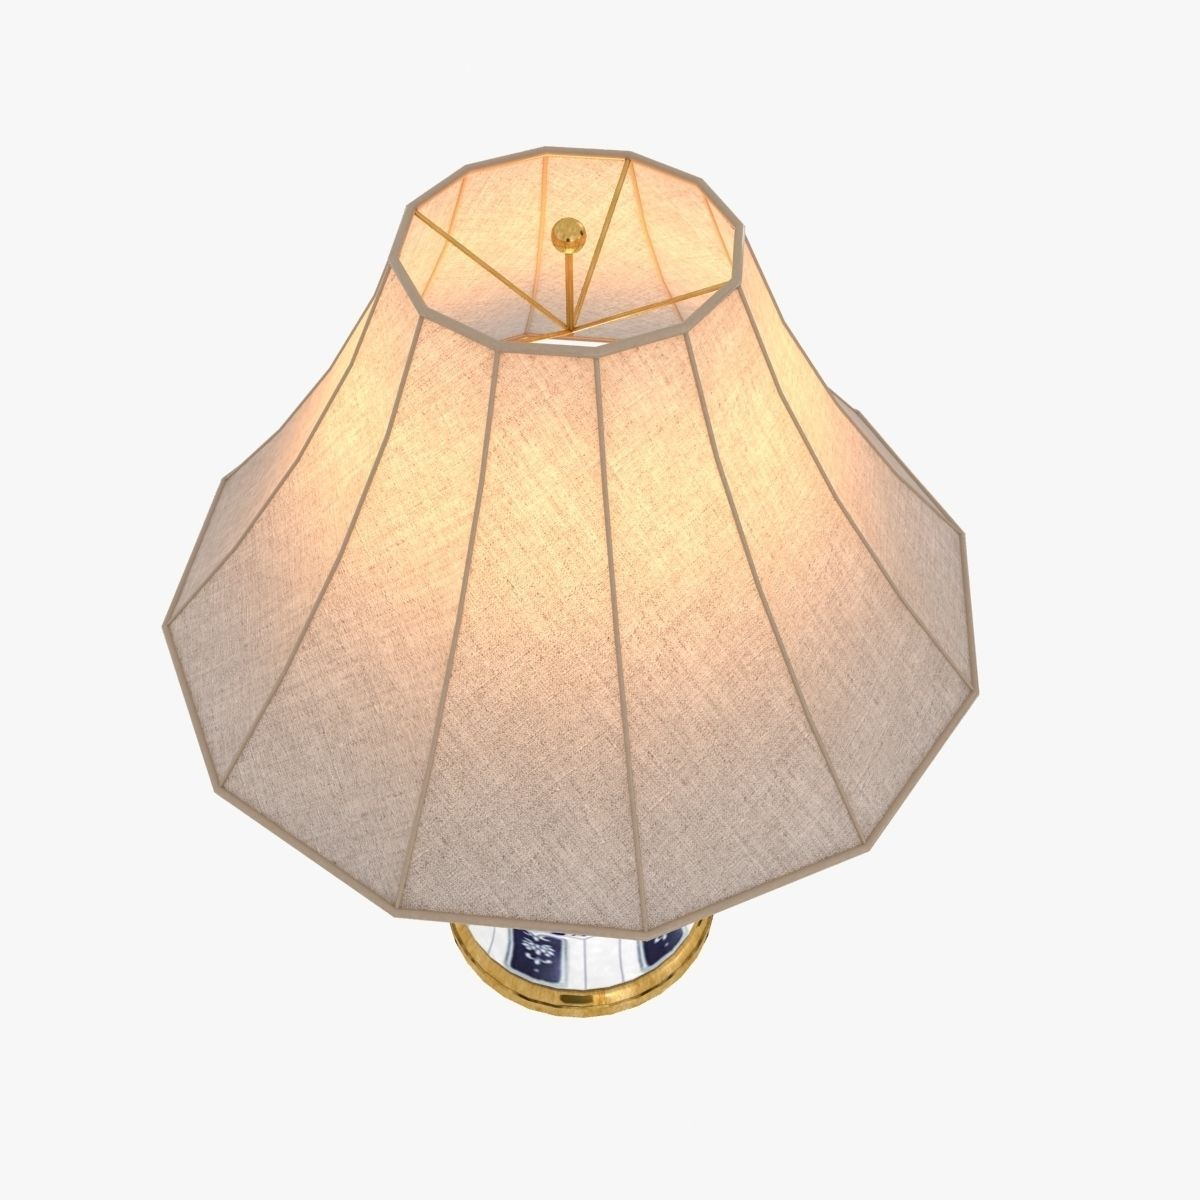 ralph lauren marlena large table lamp in blue and white 3d model max obj 3ds fbx